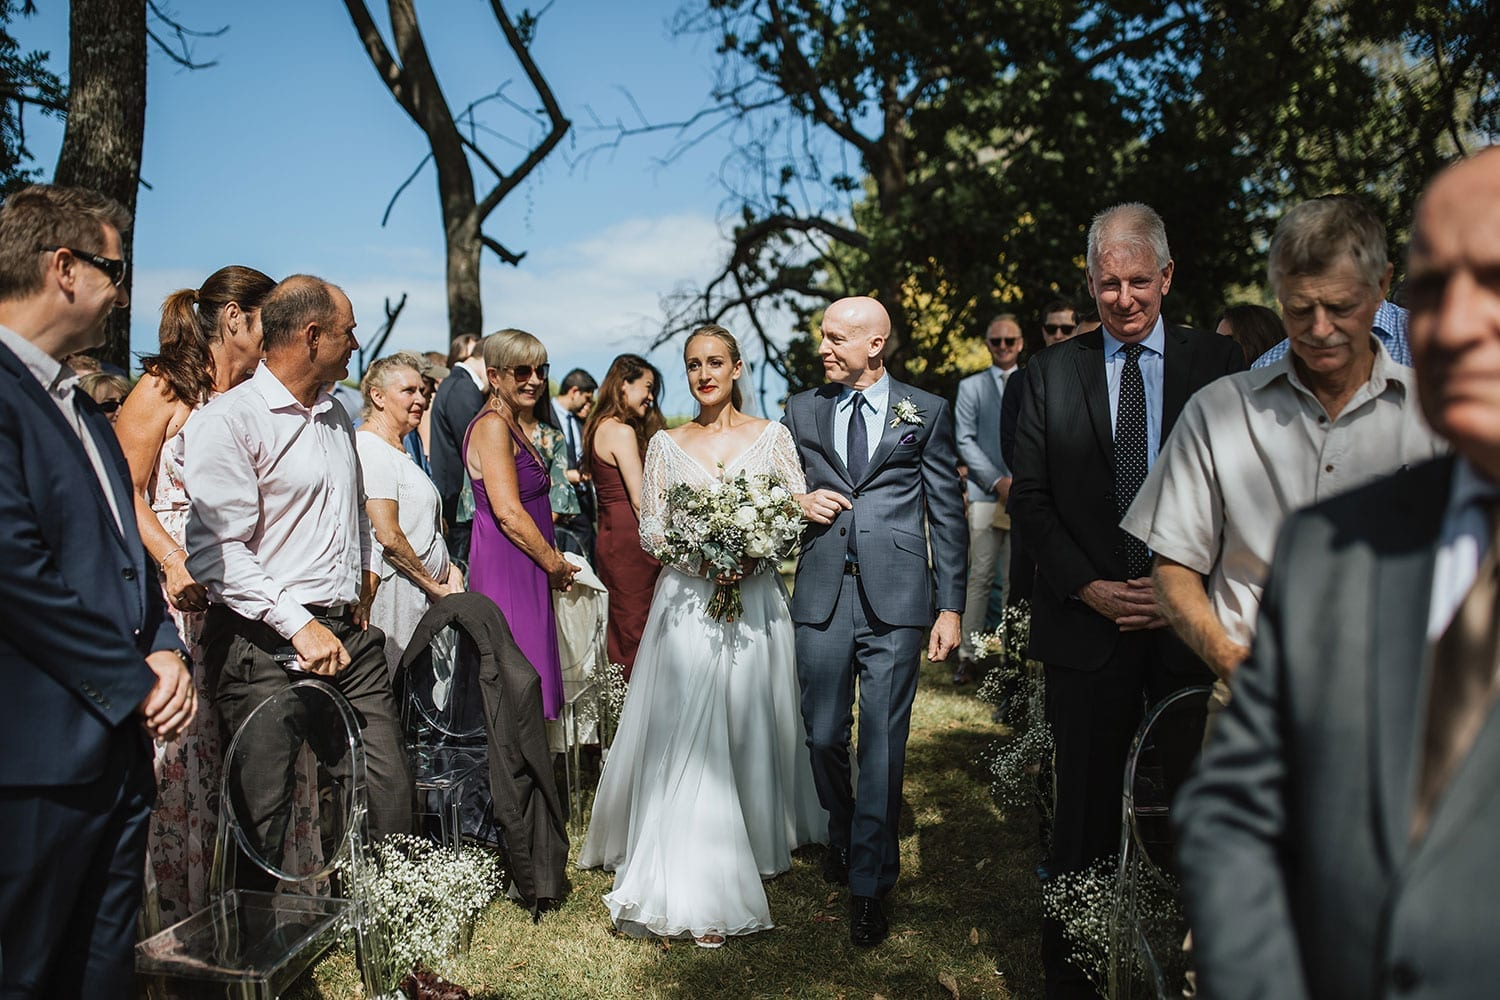 Vinka Design Features Real Weddings - Bride in custom made gown with bold lace bodice with fitted, long, beaded lace sleeves. Walking down aisle outdoors